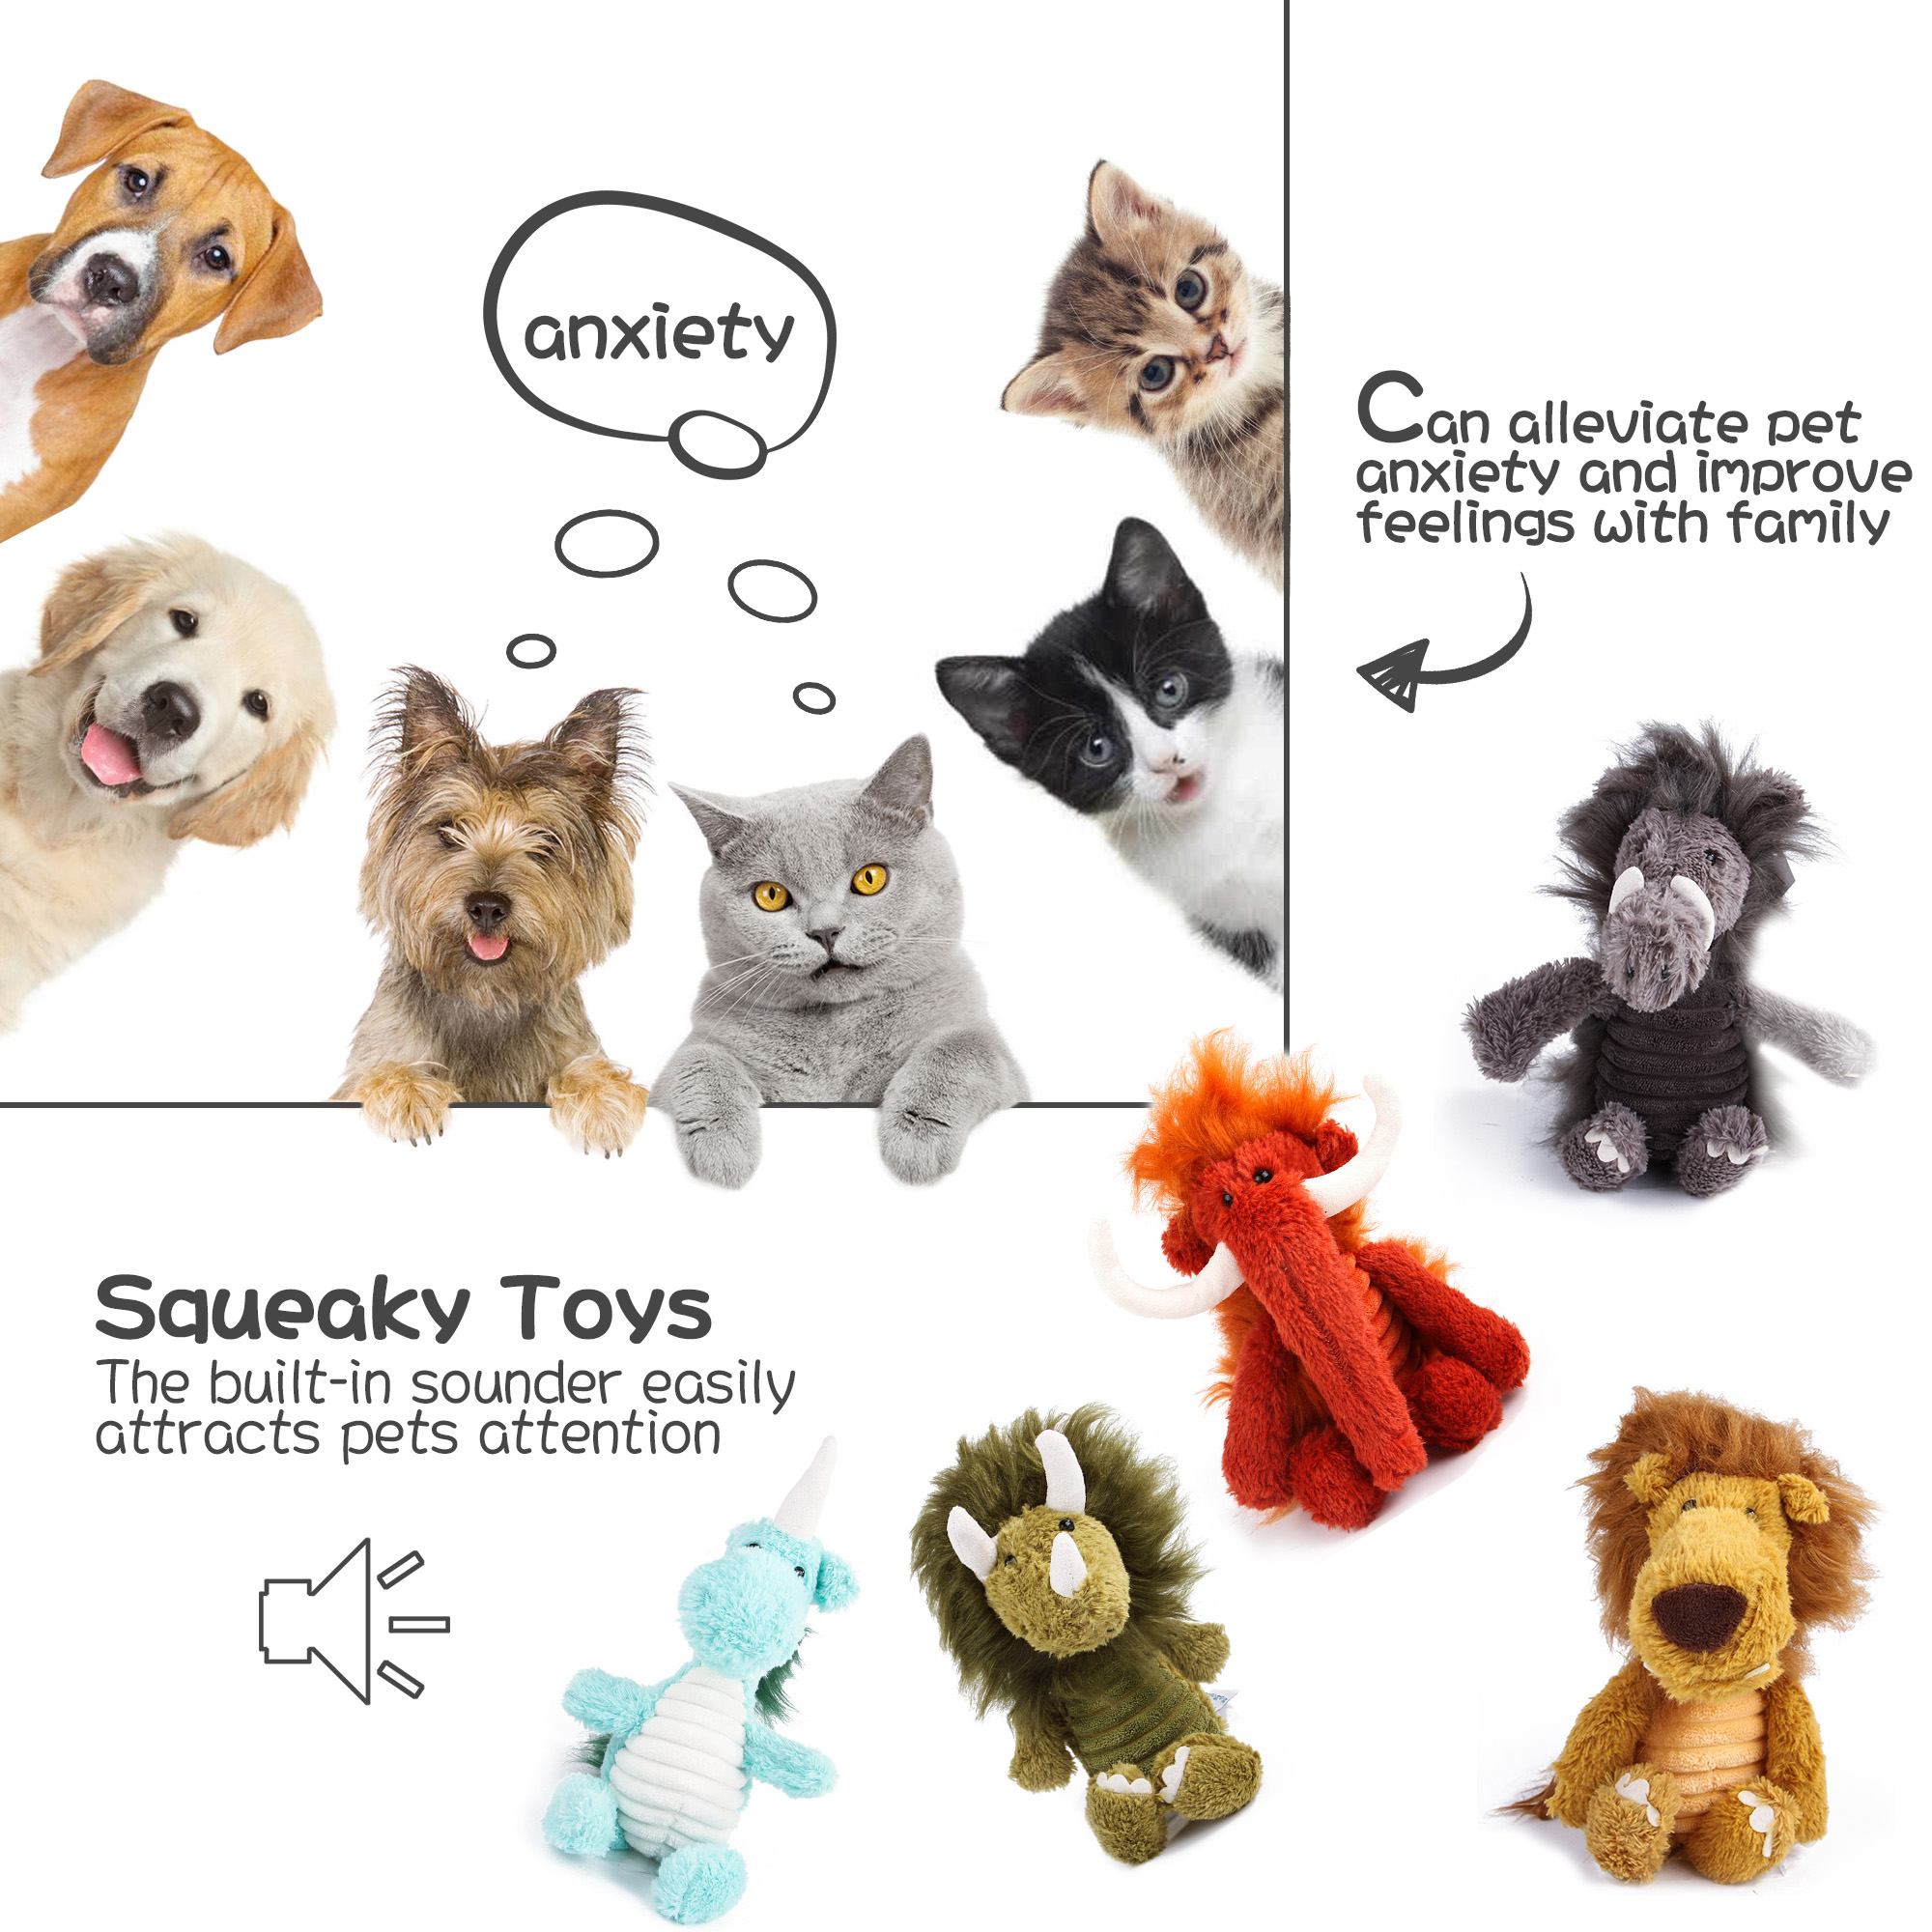 Toys for Dogs, Squeaky Toys for Puppies, Toy Dog Chew Toy for Teething Chewing and Playtime, No Stuffing Plush Animal Dog Toy Set for Small Medium Large Dog Pets (Single, Lion)